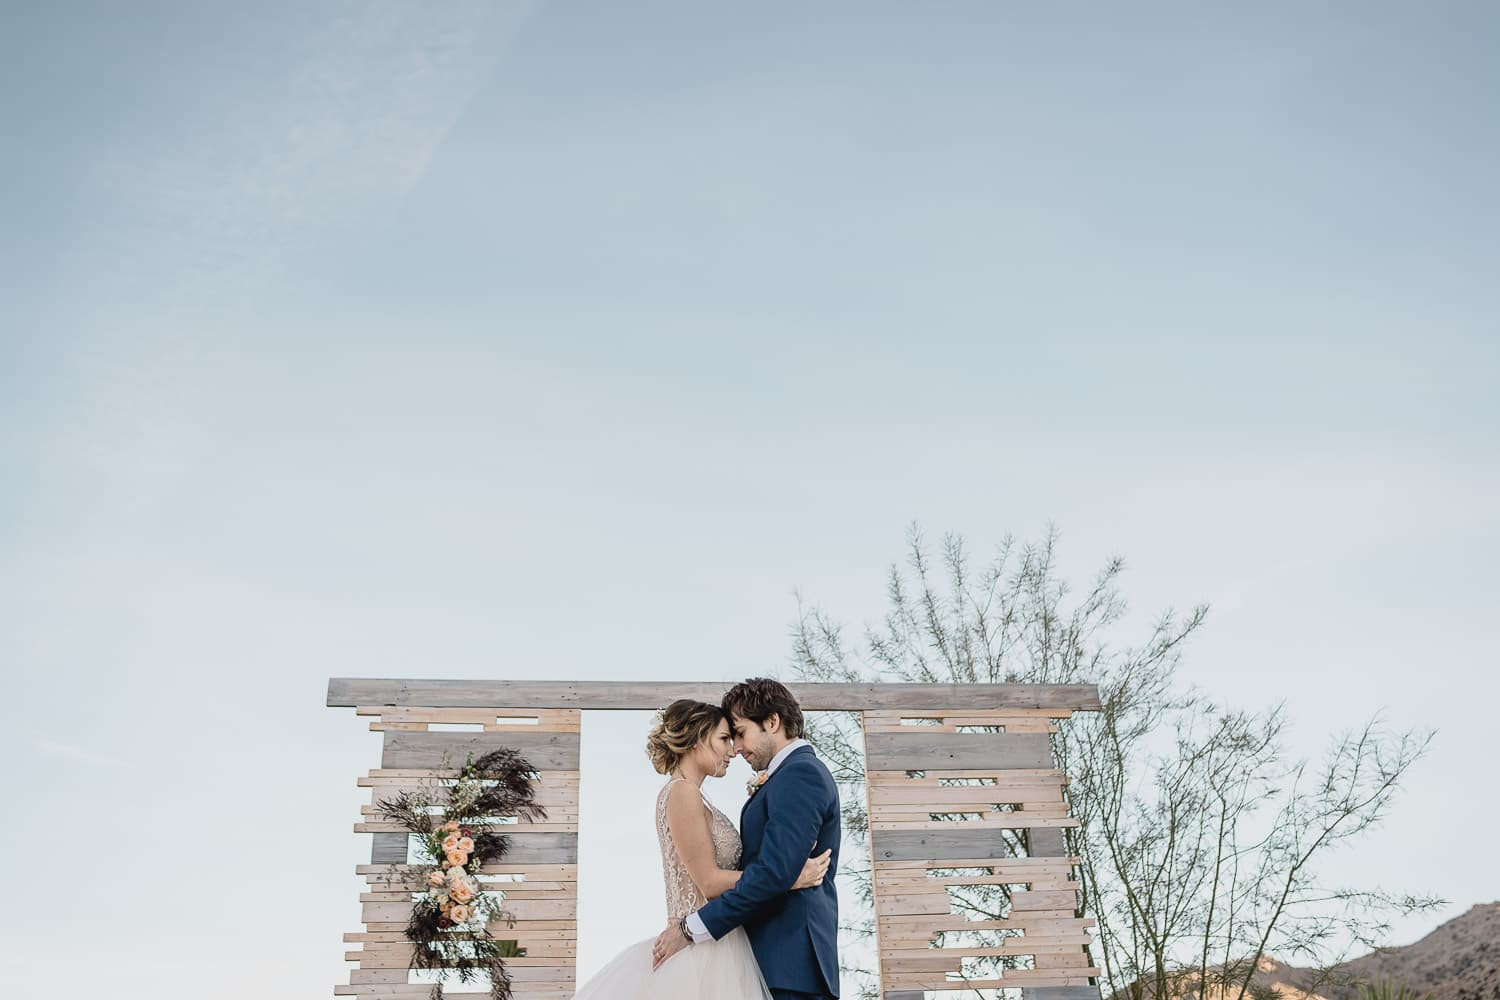 Melanie + Anthony Joshua Tree Intimate Elopement 17